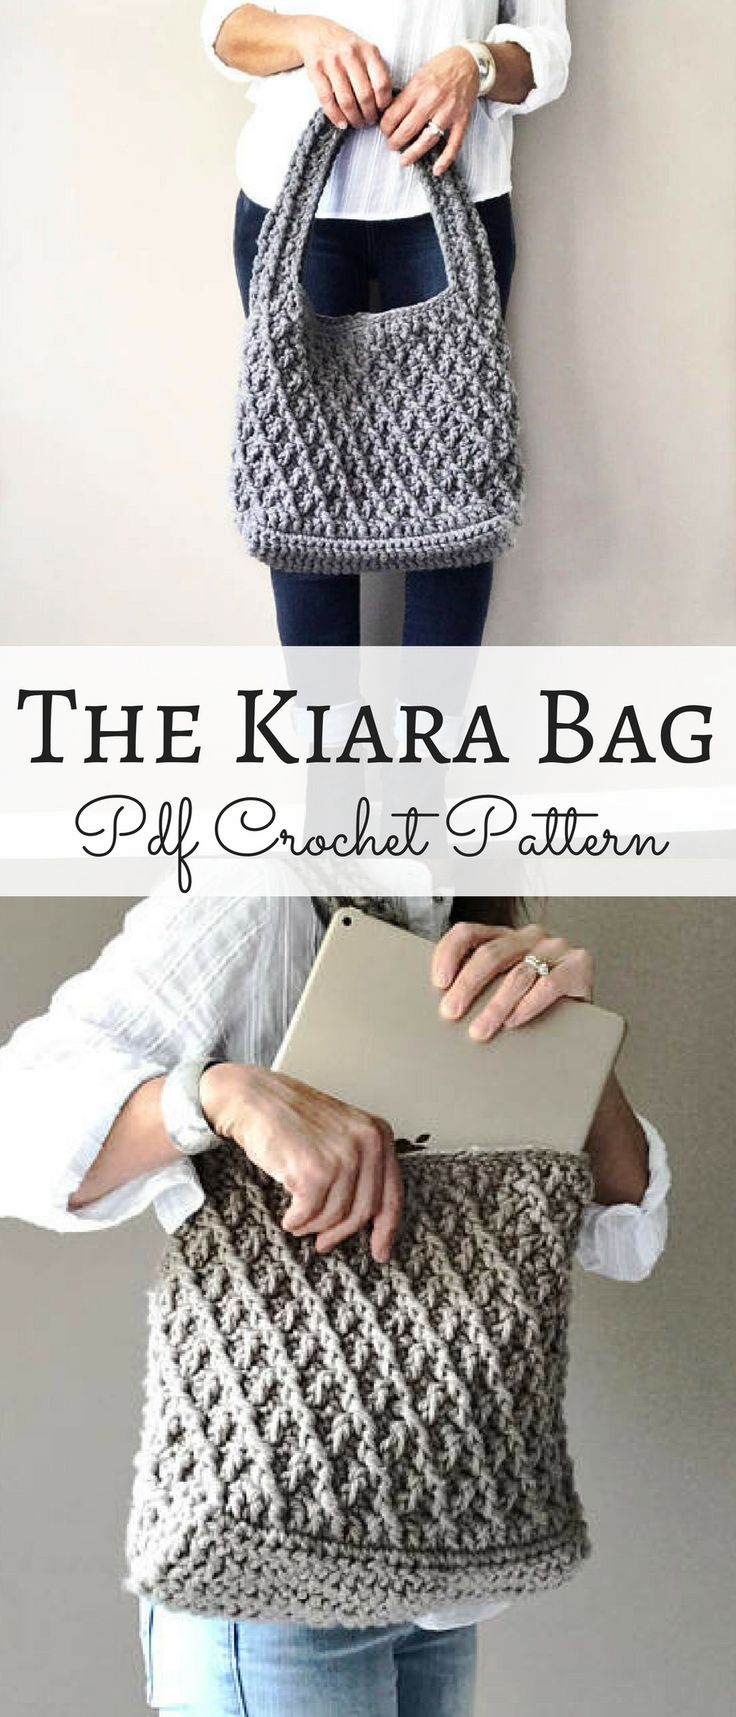 The Kiara bag crochet pattern. I can totally see myself wearing this to the office. #crochetbag #ad #officebag